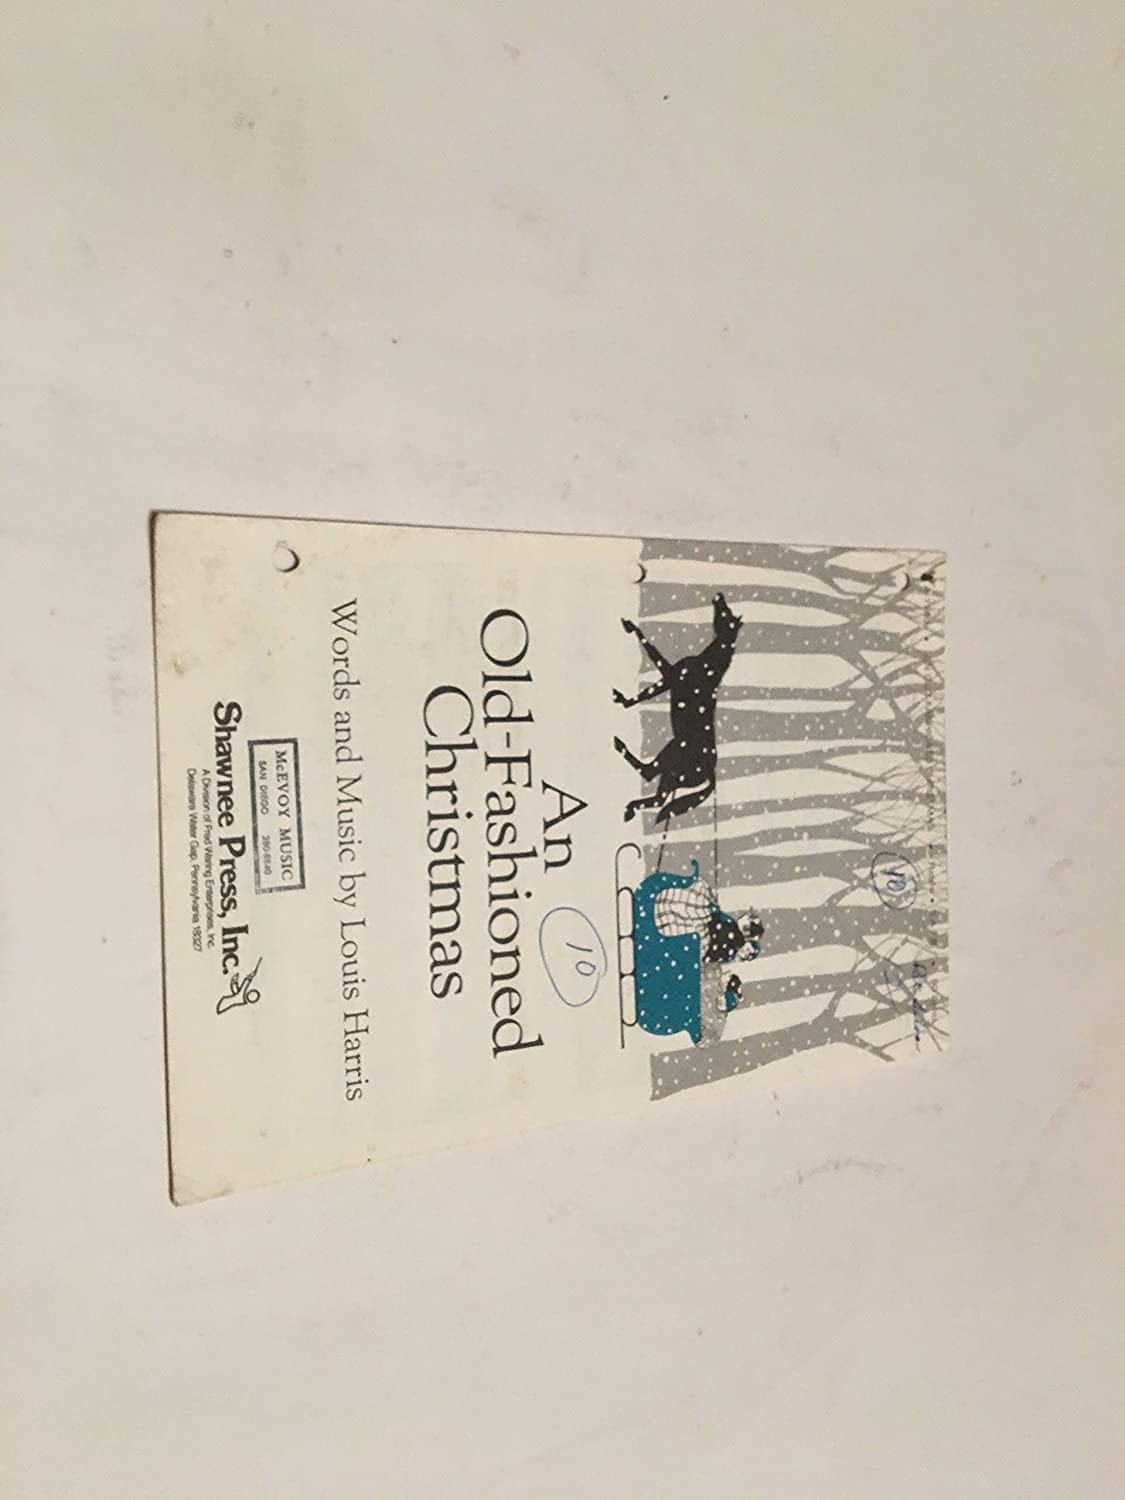 Amazon.com: AN OLD FASHIONED CHRISTMAS SHEET MUSIC: Musical Instruments